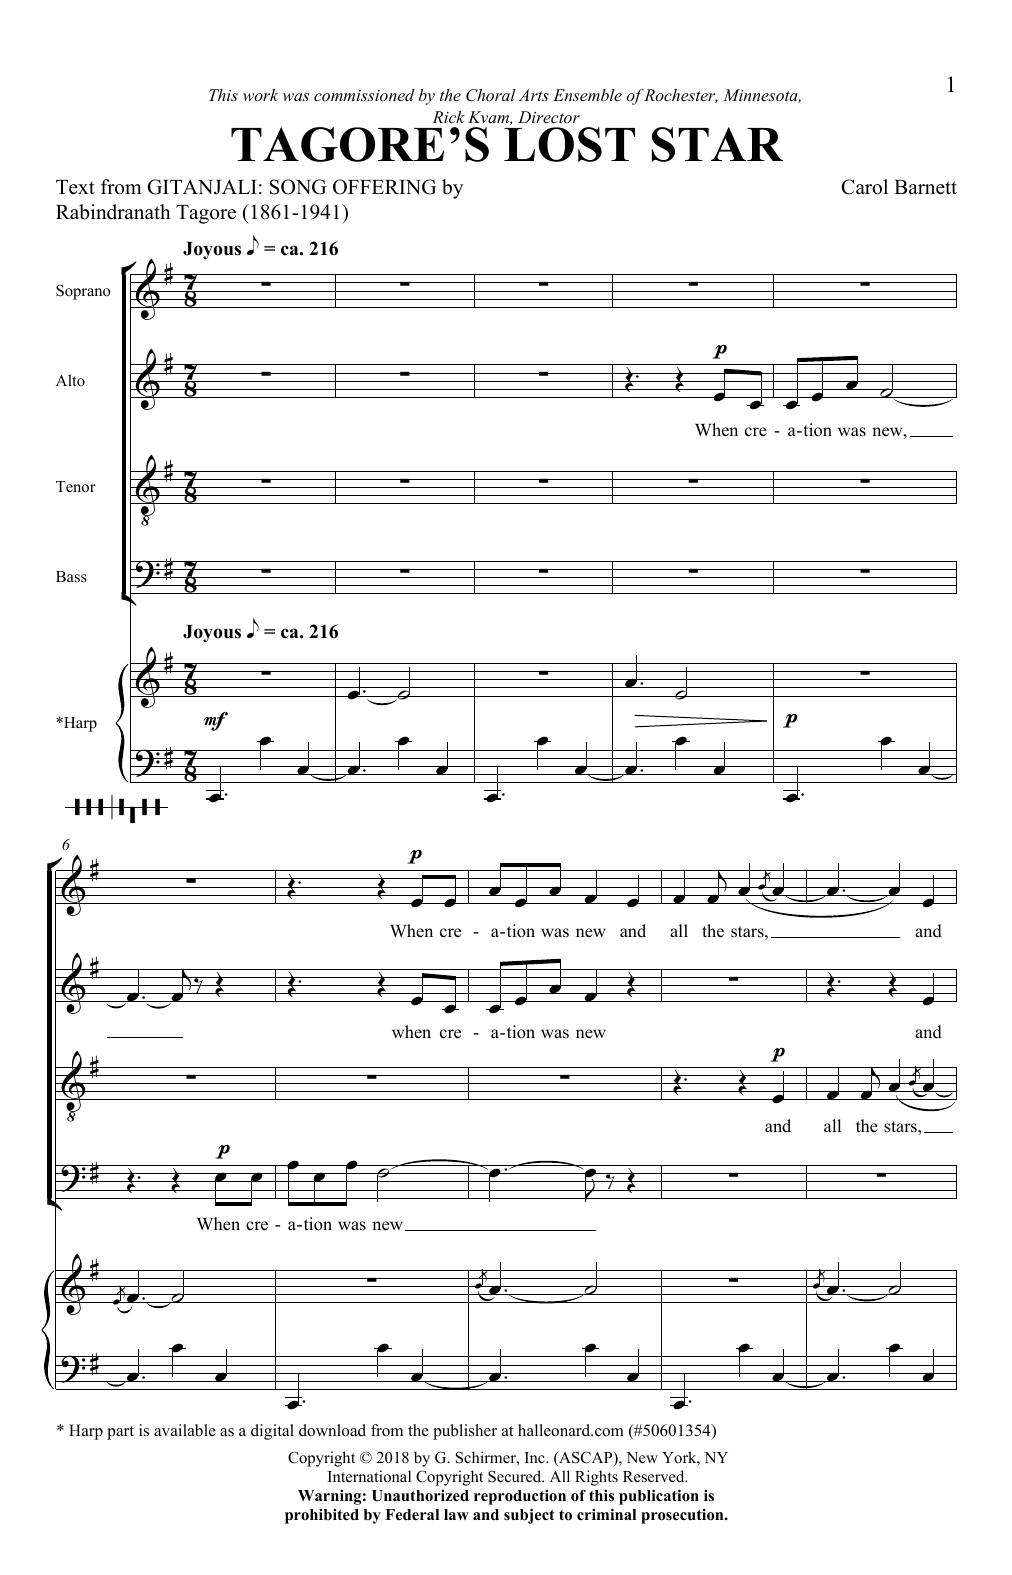 Tagore's Lost Star (SATB Choir)